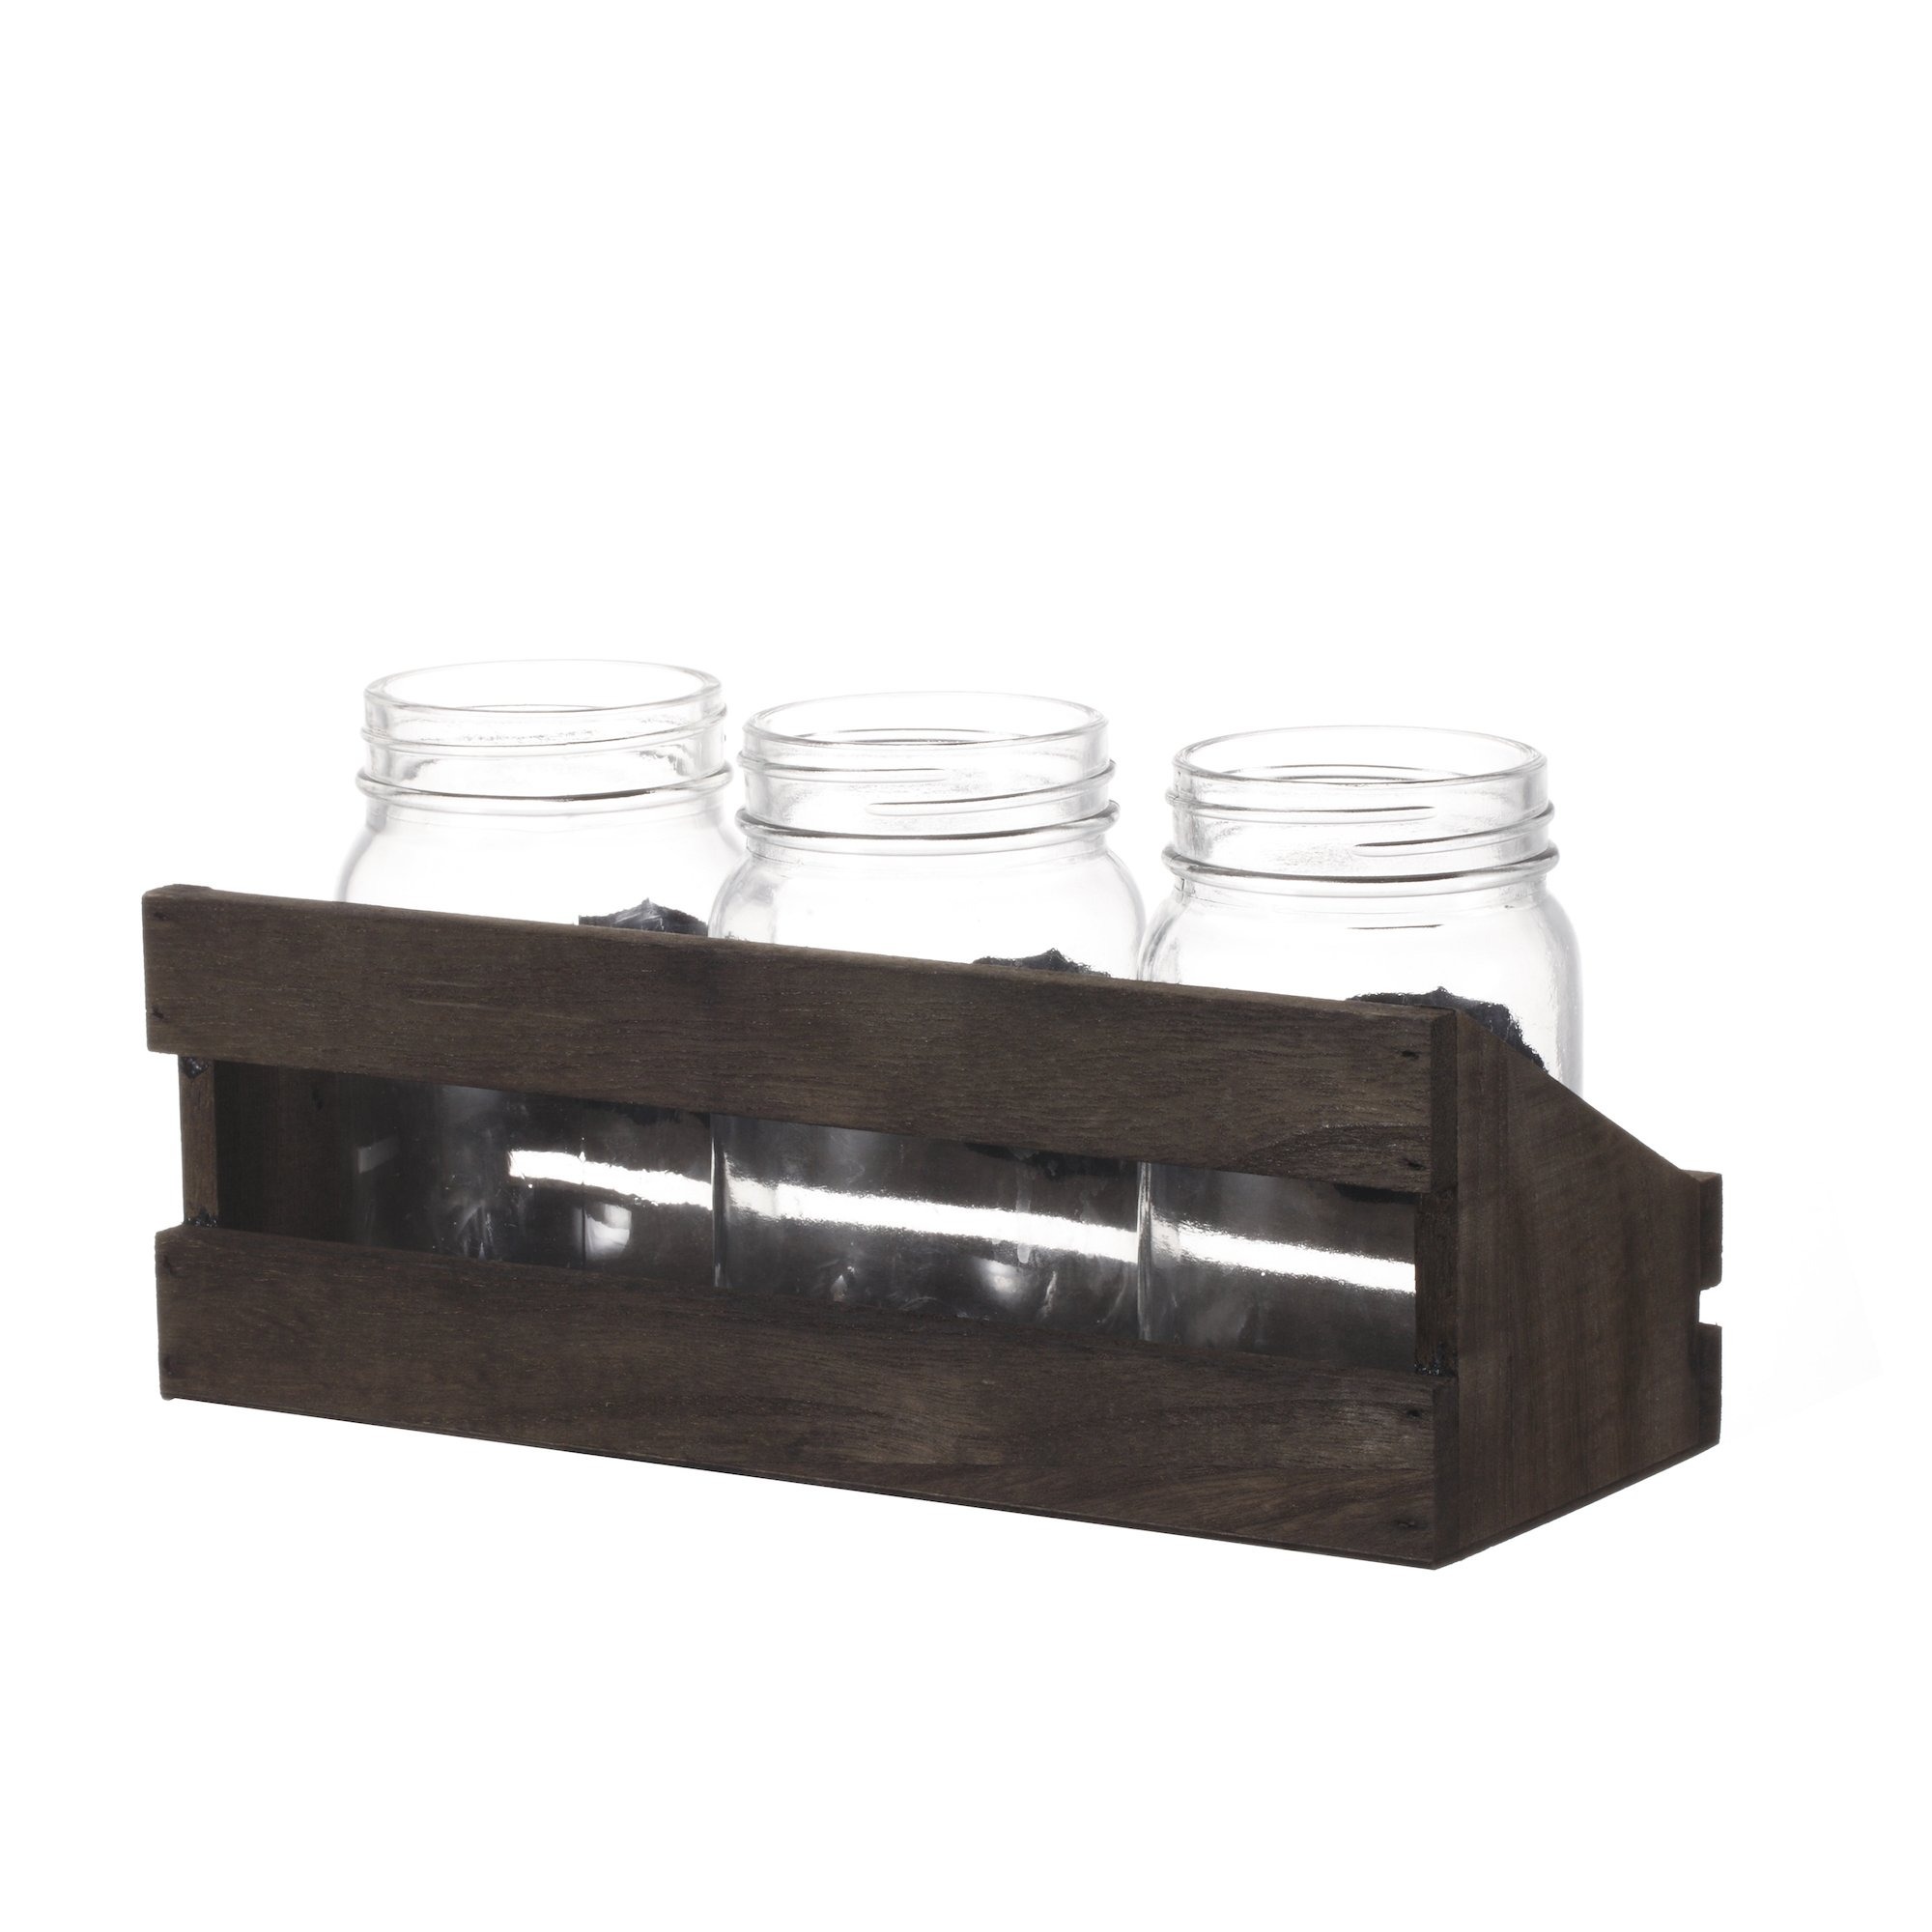 V-More Bud Vase with Chicken Wire Basket V-More Rustic Glass Mason Jar with Chalkboard Label and Wooden Tray 6.5-inch Tall For Home Decor Wedding Party Celebration by V-More Bud Vase with Chicken Wire Basket (Image #4)